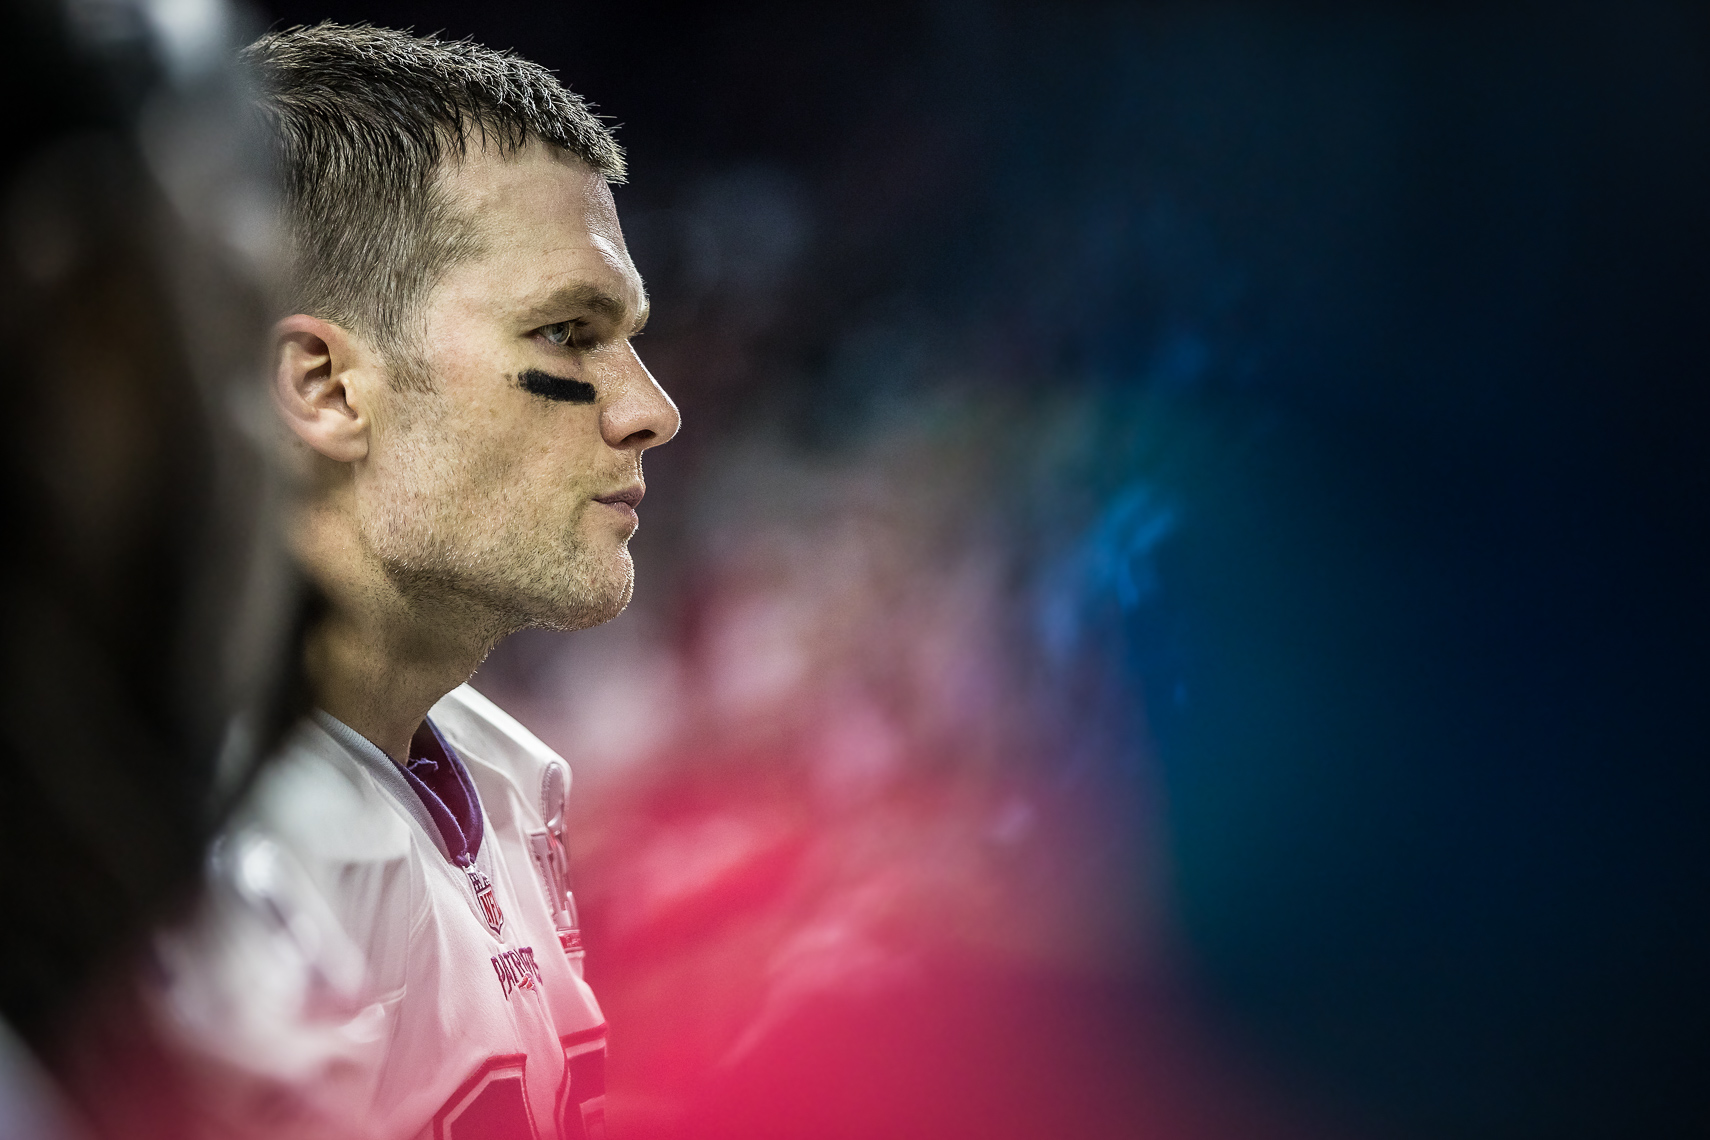 Best Photos of Tom Brady Super Bowl MVP Champion 10